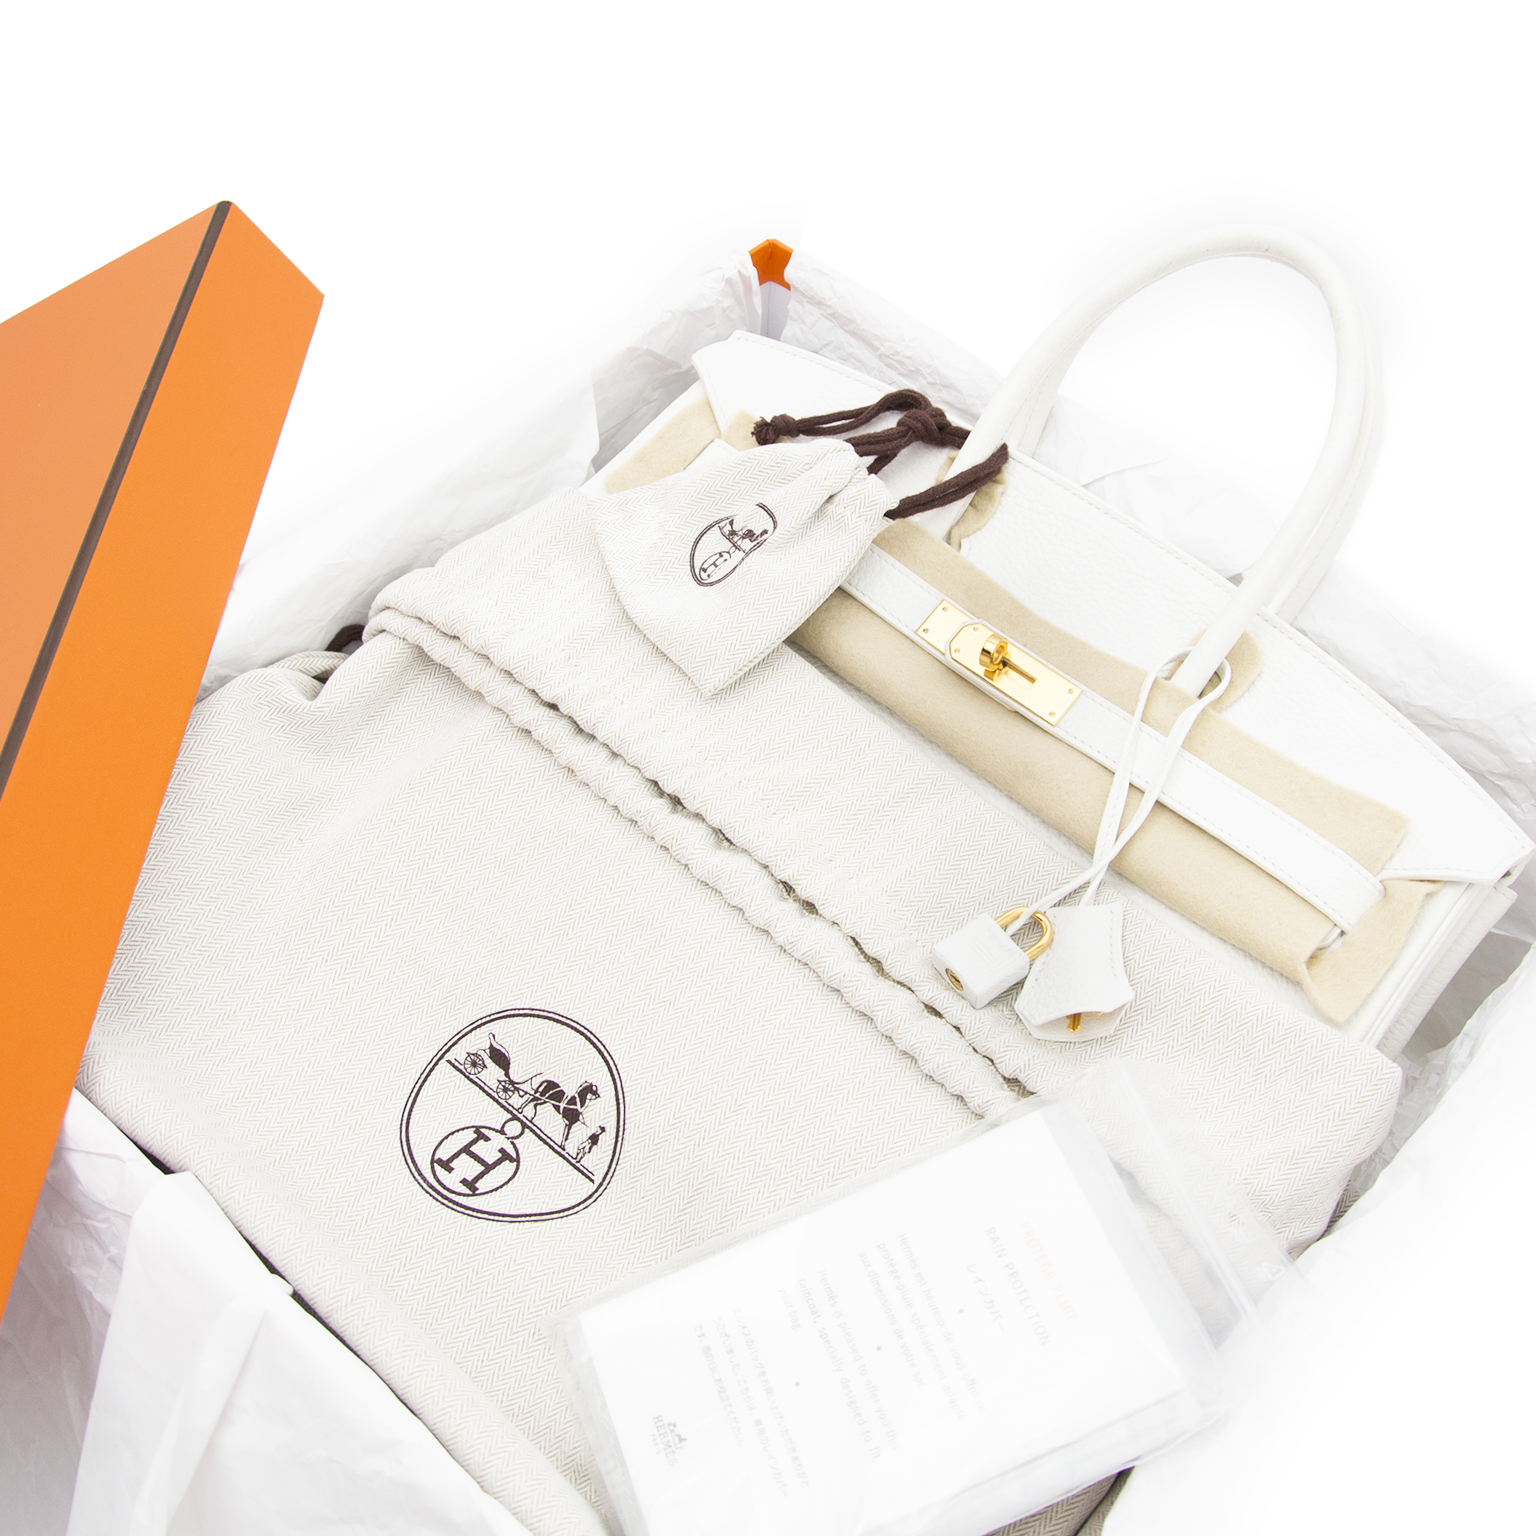 skip the waitinglist and get your hermes birkin 35 white clemence taurillon ghw right now at labellov.com